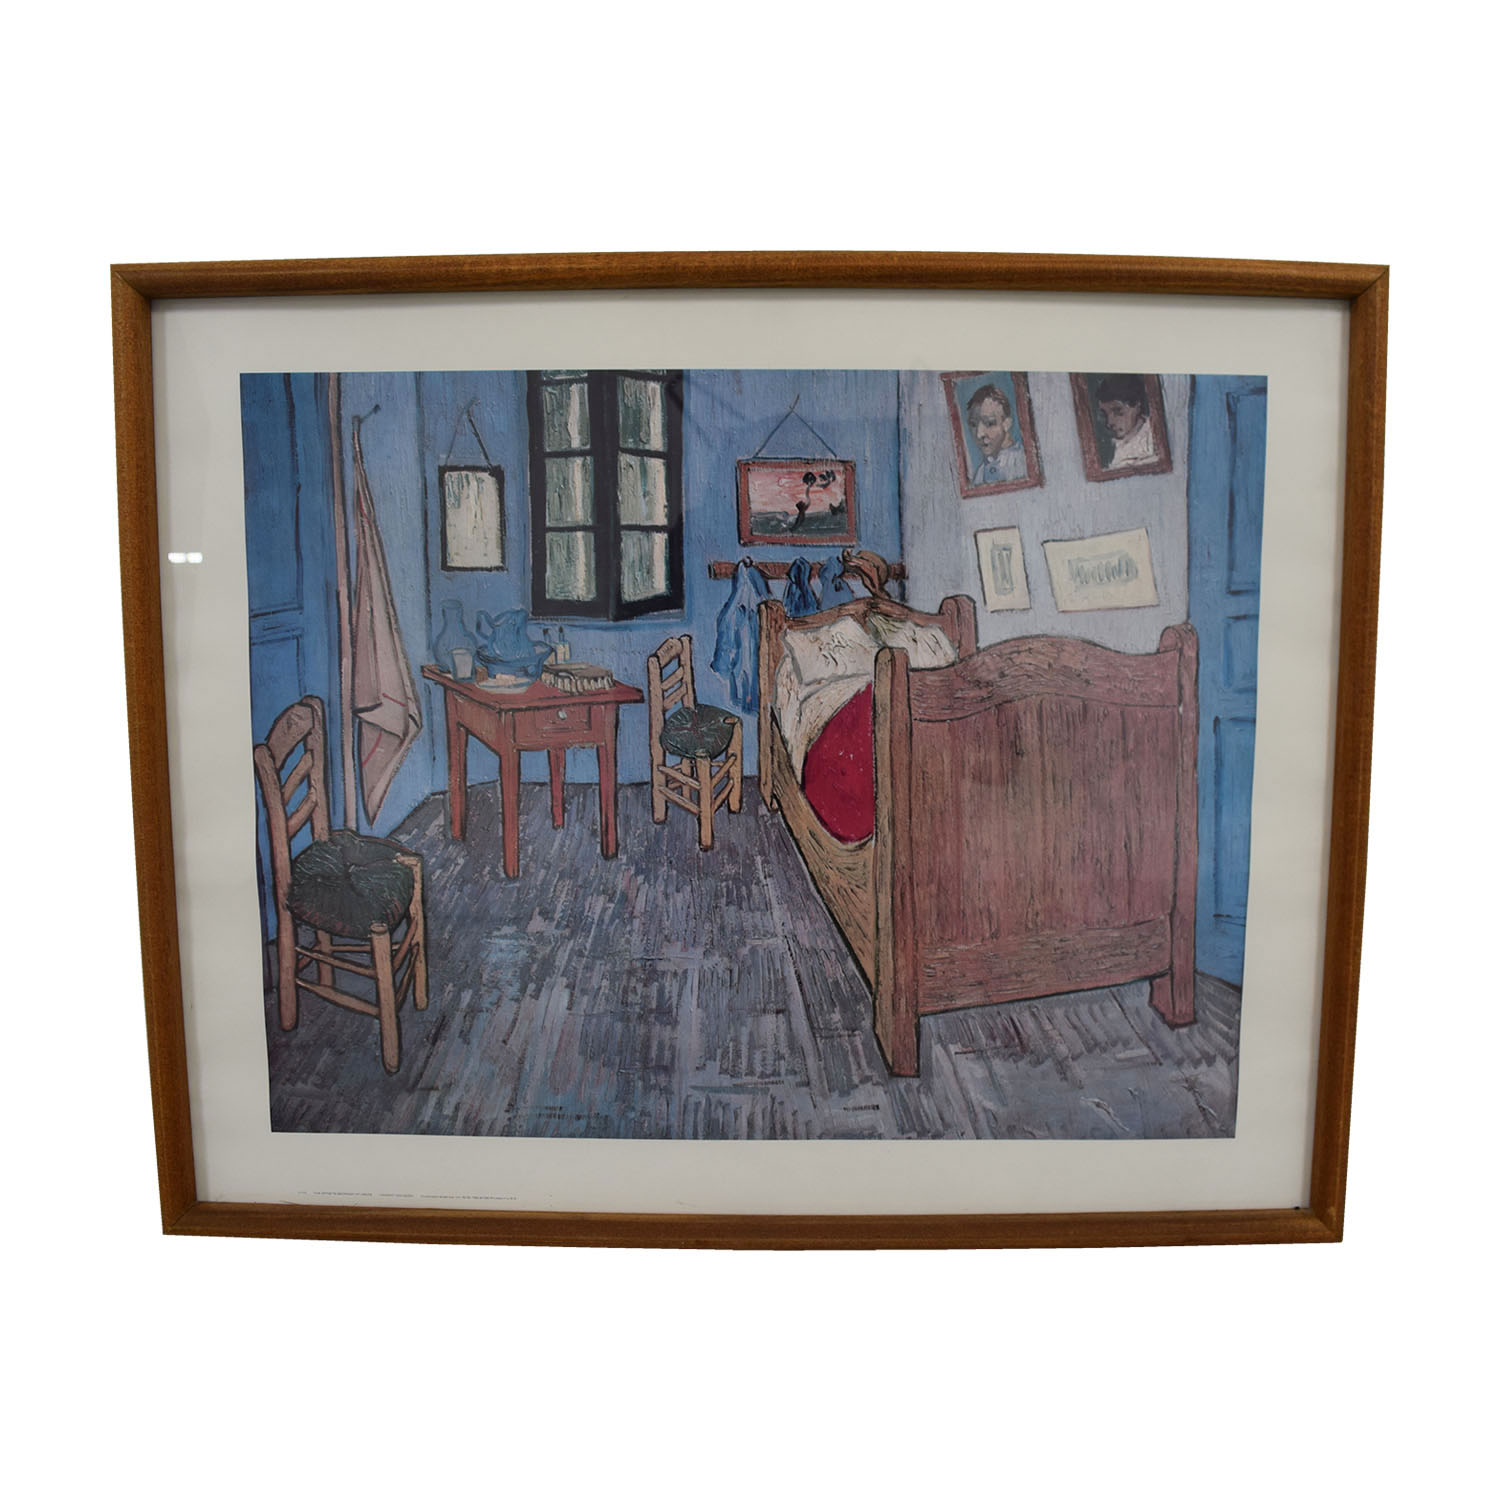 Framed Chicago Art Institute Van Gogh The Bedroom Print Chicago Art Institute